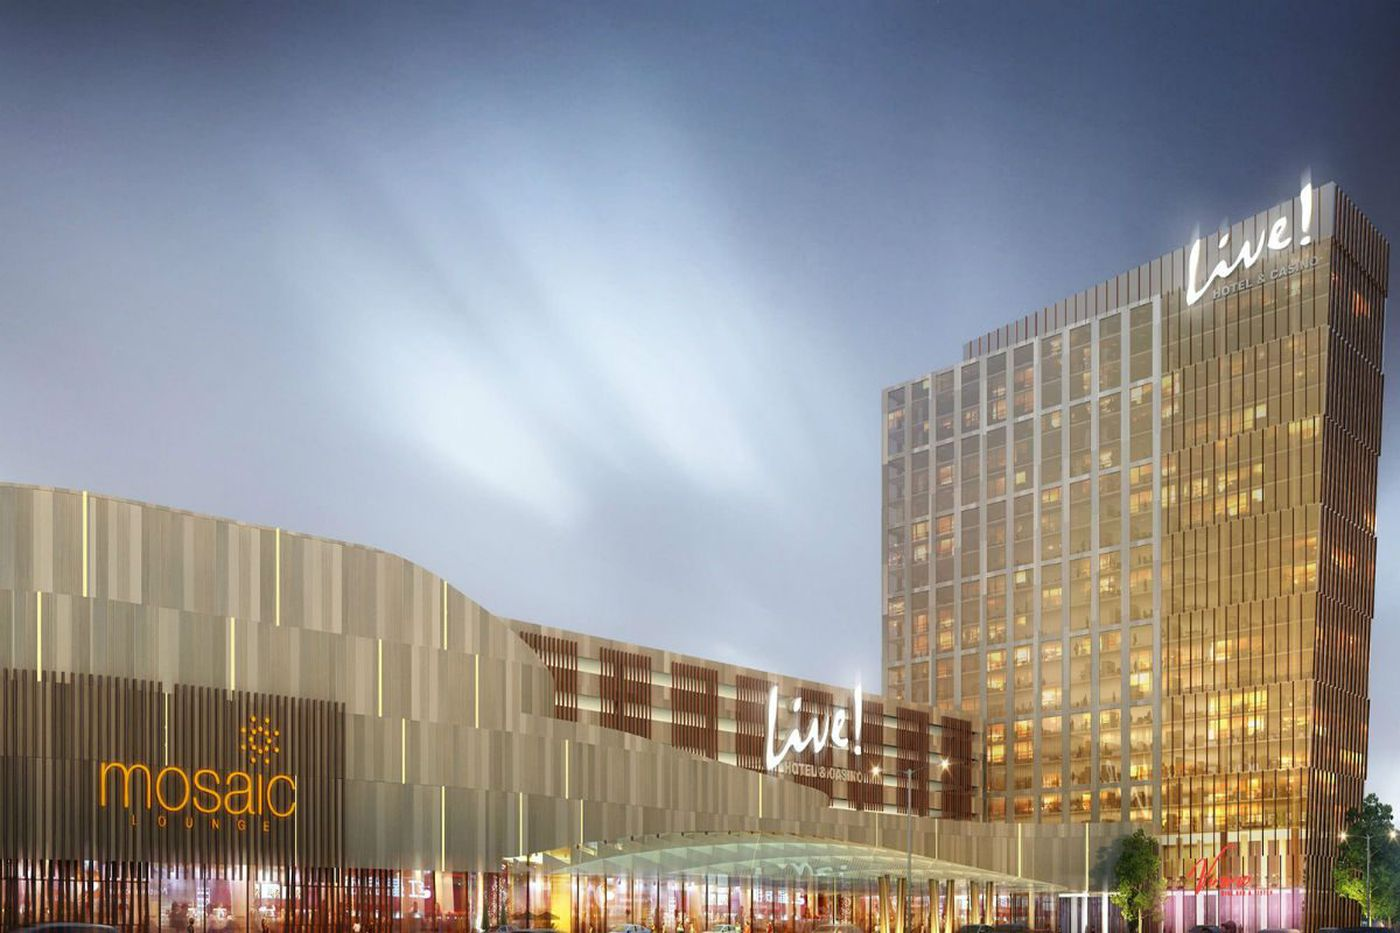 2nd Philly casino coming, local control for Philly schools, Penn State is back | Morning Newsletter